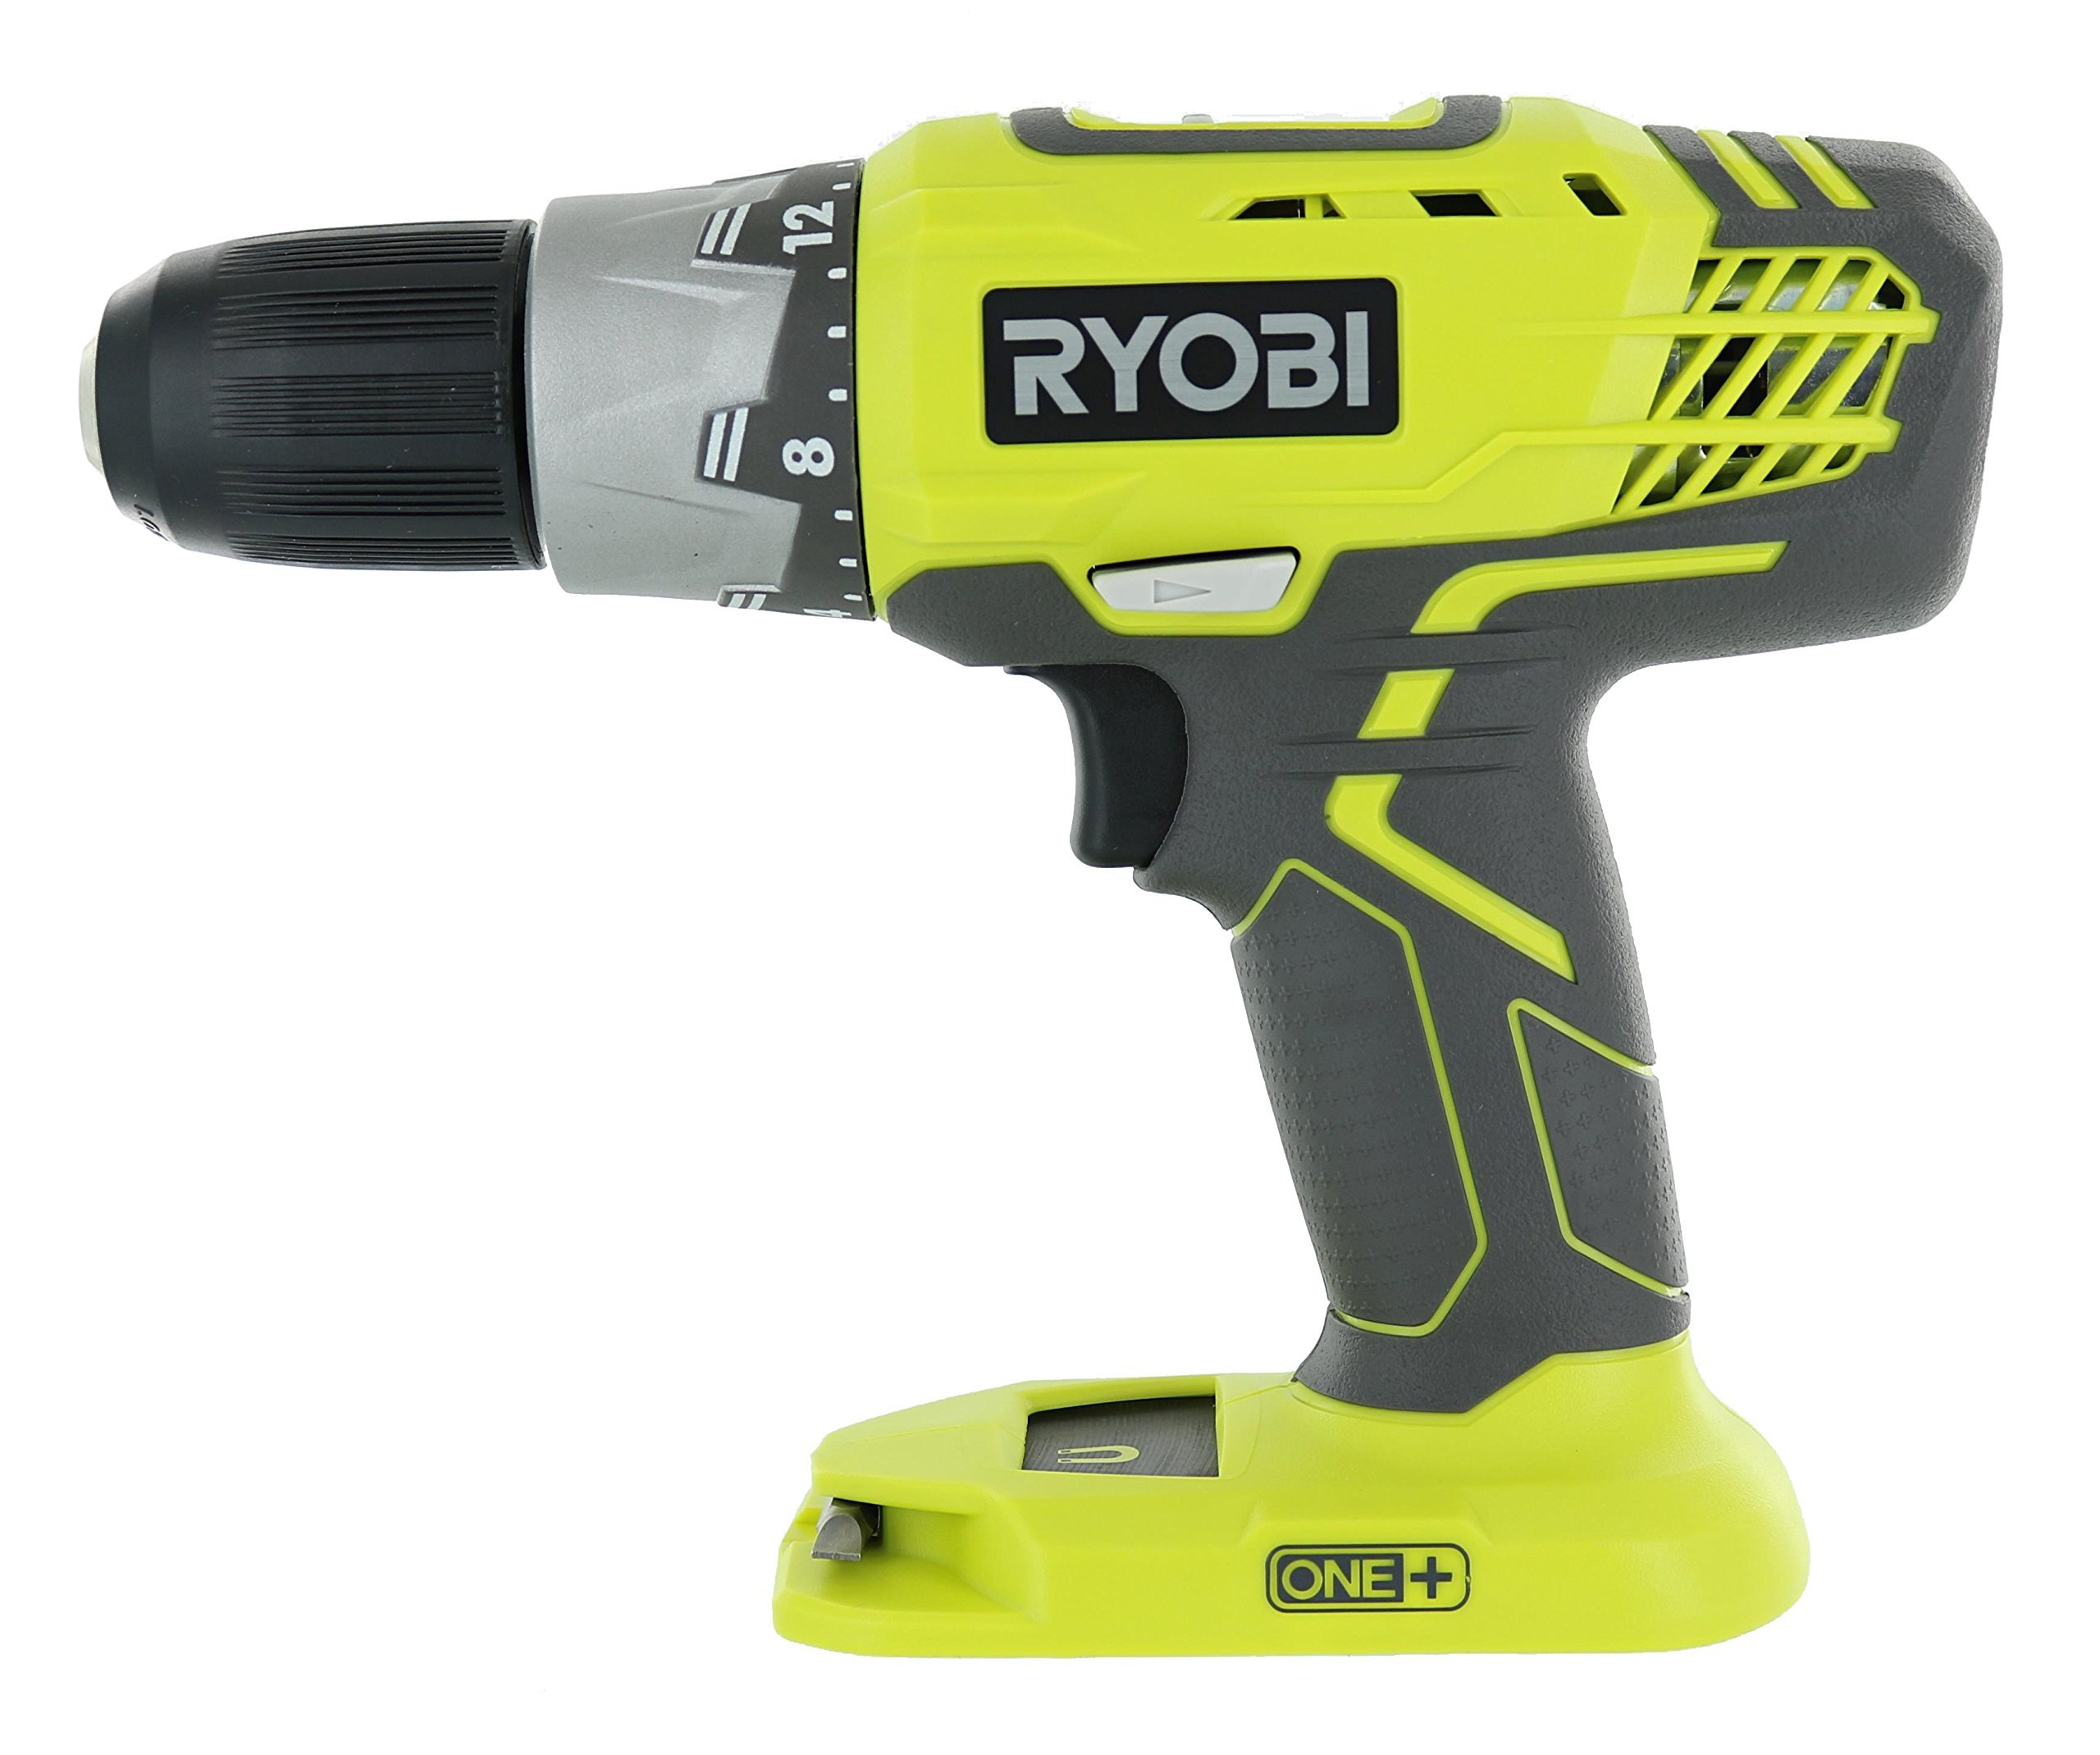 Ryobi P277 One+ 18 Volt Lithium Ion 1/2 Inch 2-Speed Drill Driver (18 Volt Batteries Not Included / Power Tool Only) (Certified Refurbished)